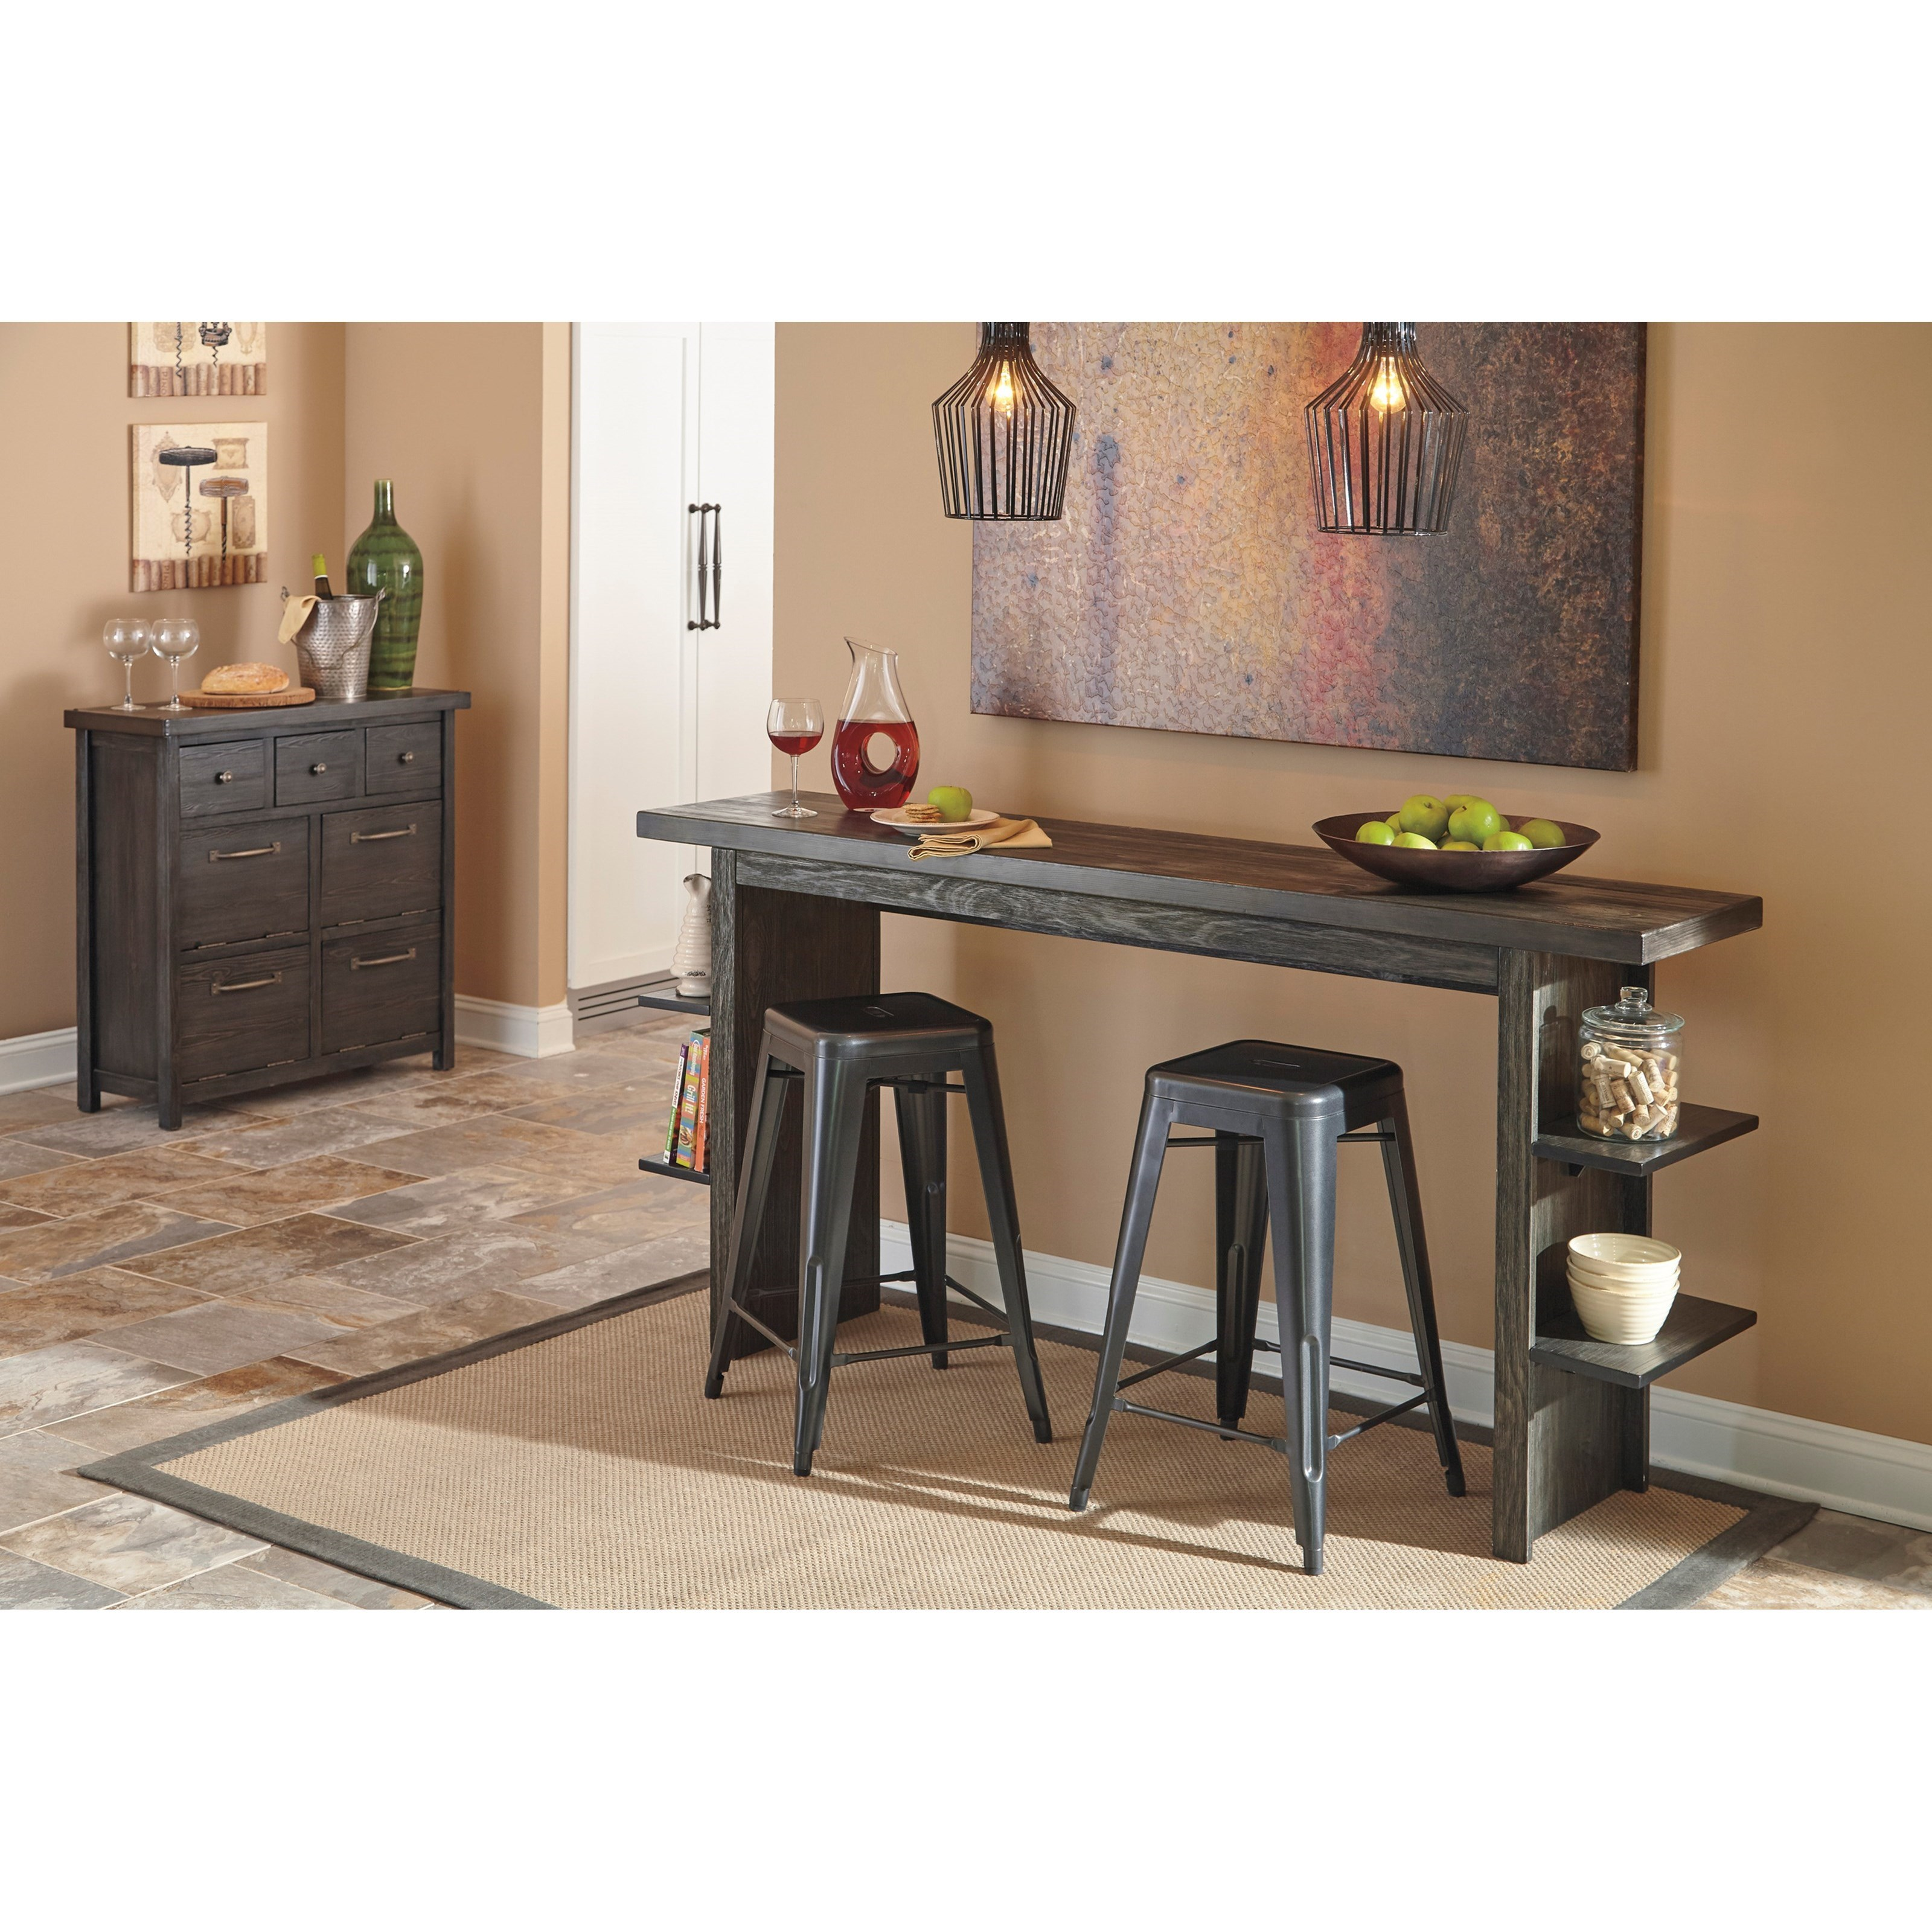 Signature design by ashley lamoille casual dining room for Casual dining decor